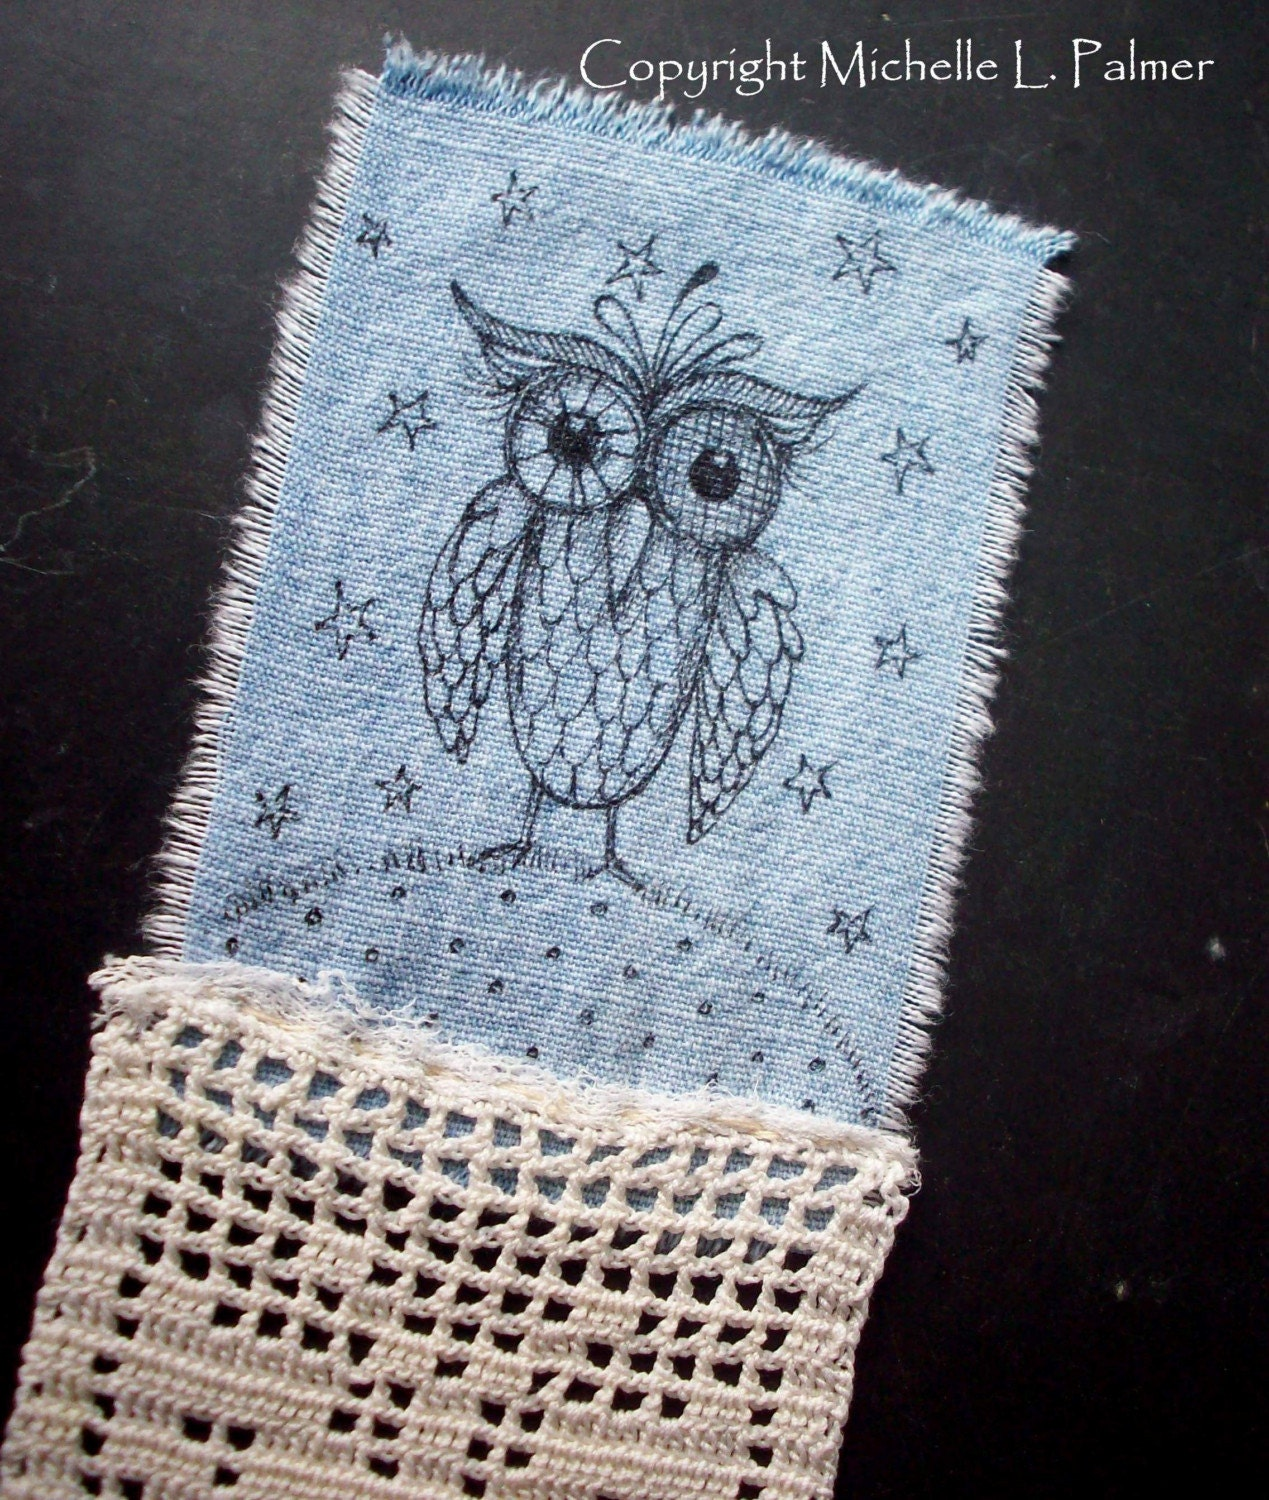 Owl Bookmark Vintage Linen Art Original Illustration on Fabric